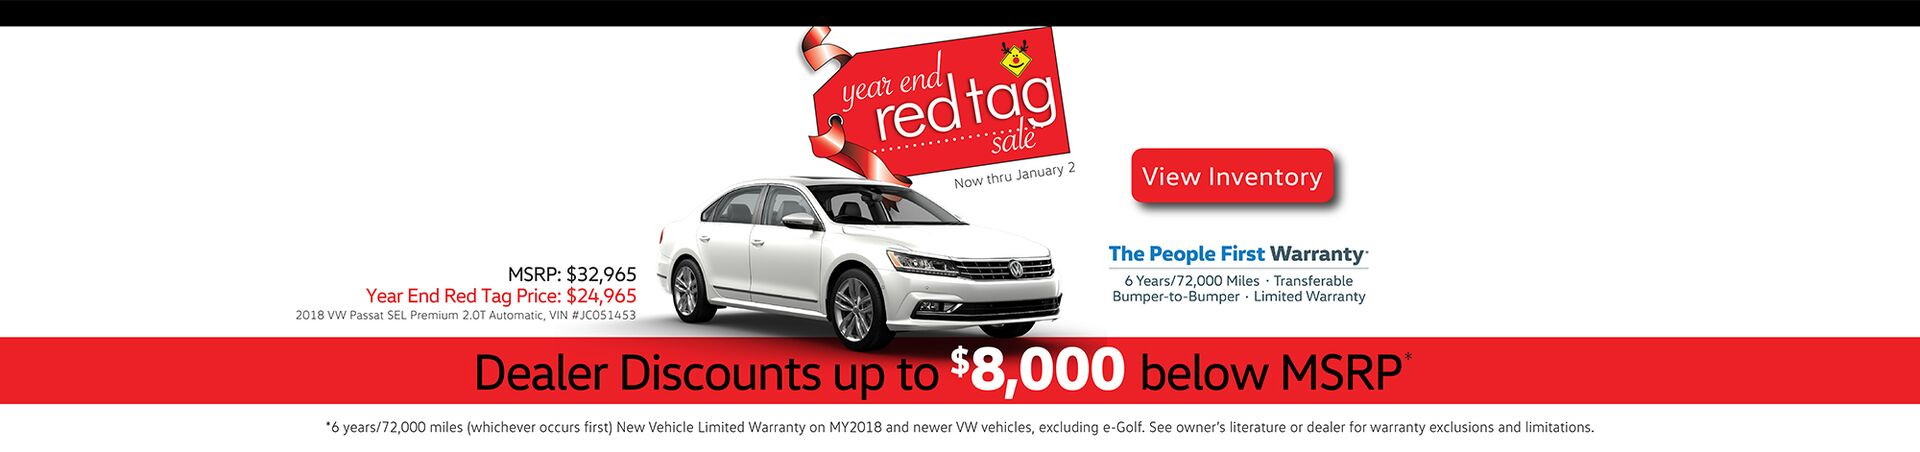 Capo VW Year End Red Tag Sale - Discounts up to $8,000 below MSRP now thru January 2